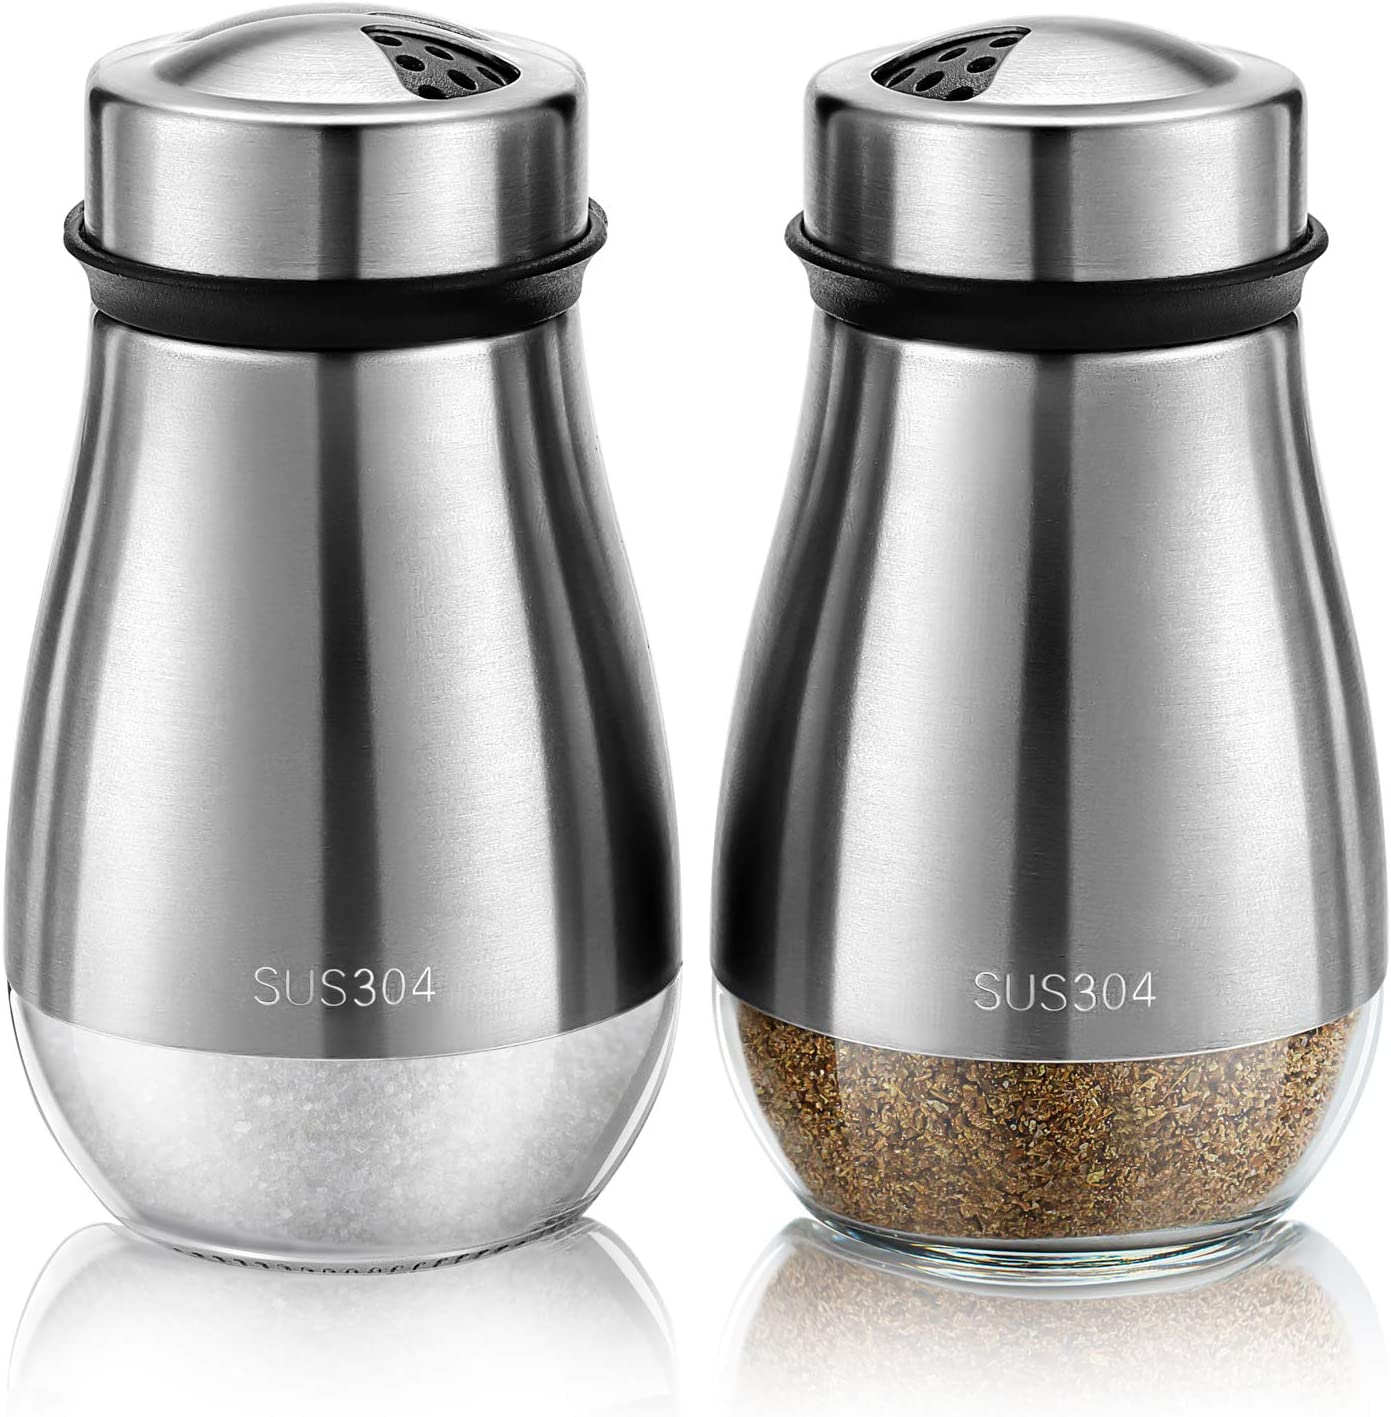 TUAEB 2pcs Salt and Pepper Shakers Set - Salt Shaker with Adjustable Pour Holes - 304 Stainless Steel & Glass Spice Dispenser Refillable - Perfect for Black Pepper, Kosher And Sea Salts - Seasoning